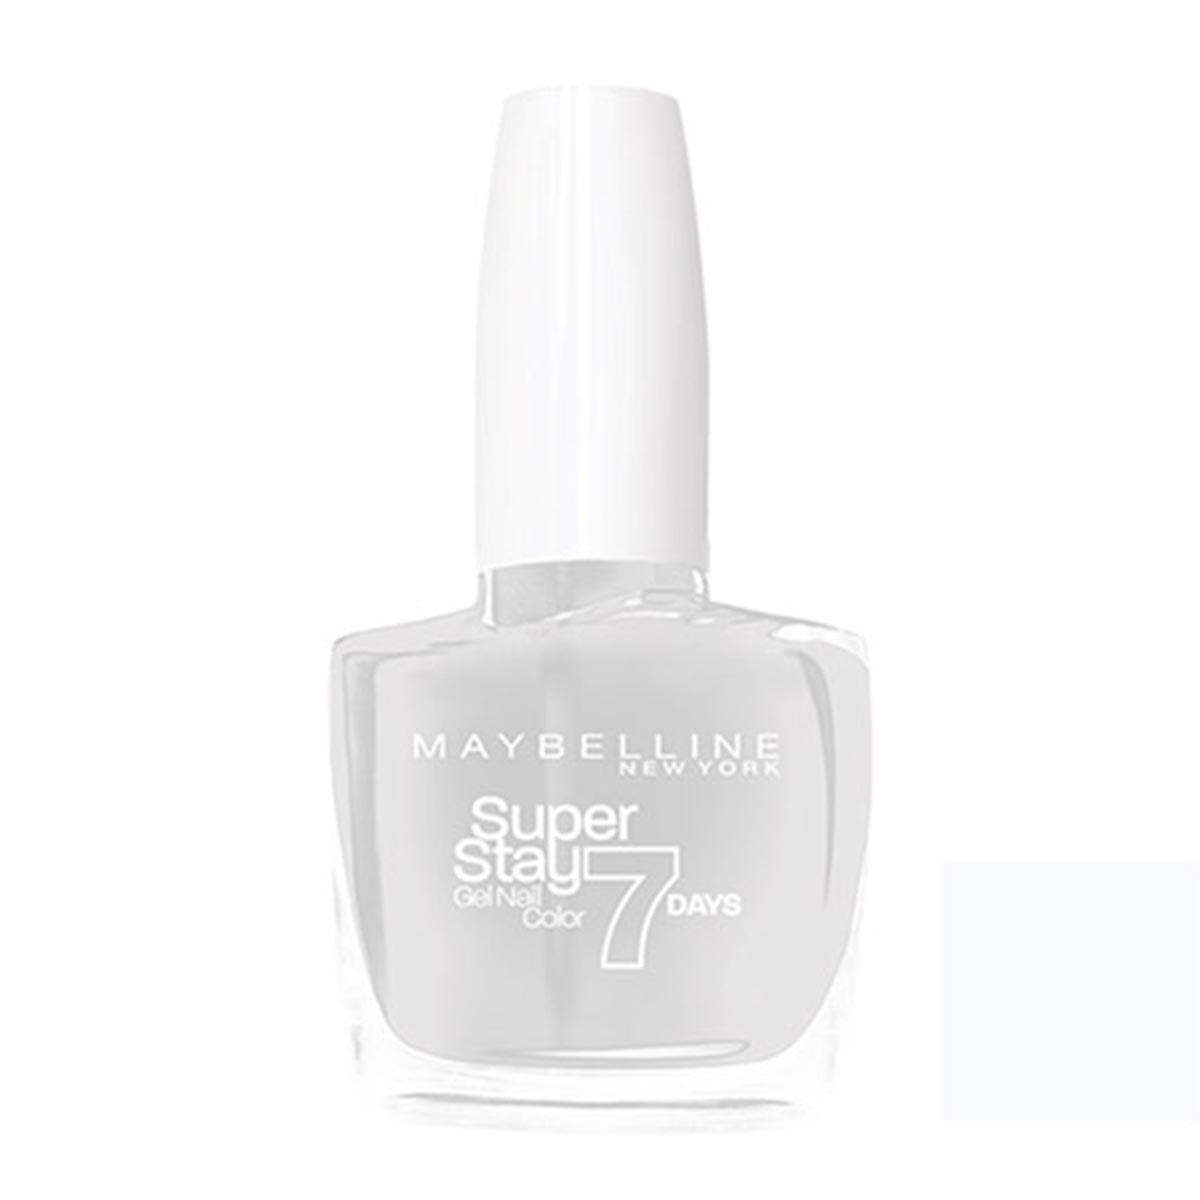 Maybelline Superstay Gel Nail Color 7 Days 025 Cristal Clear